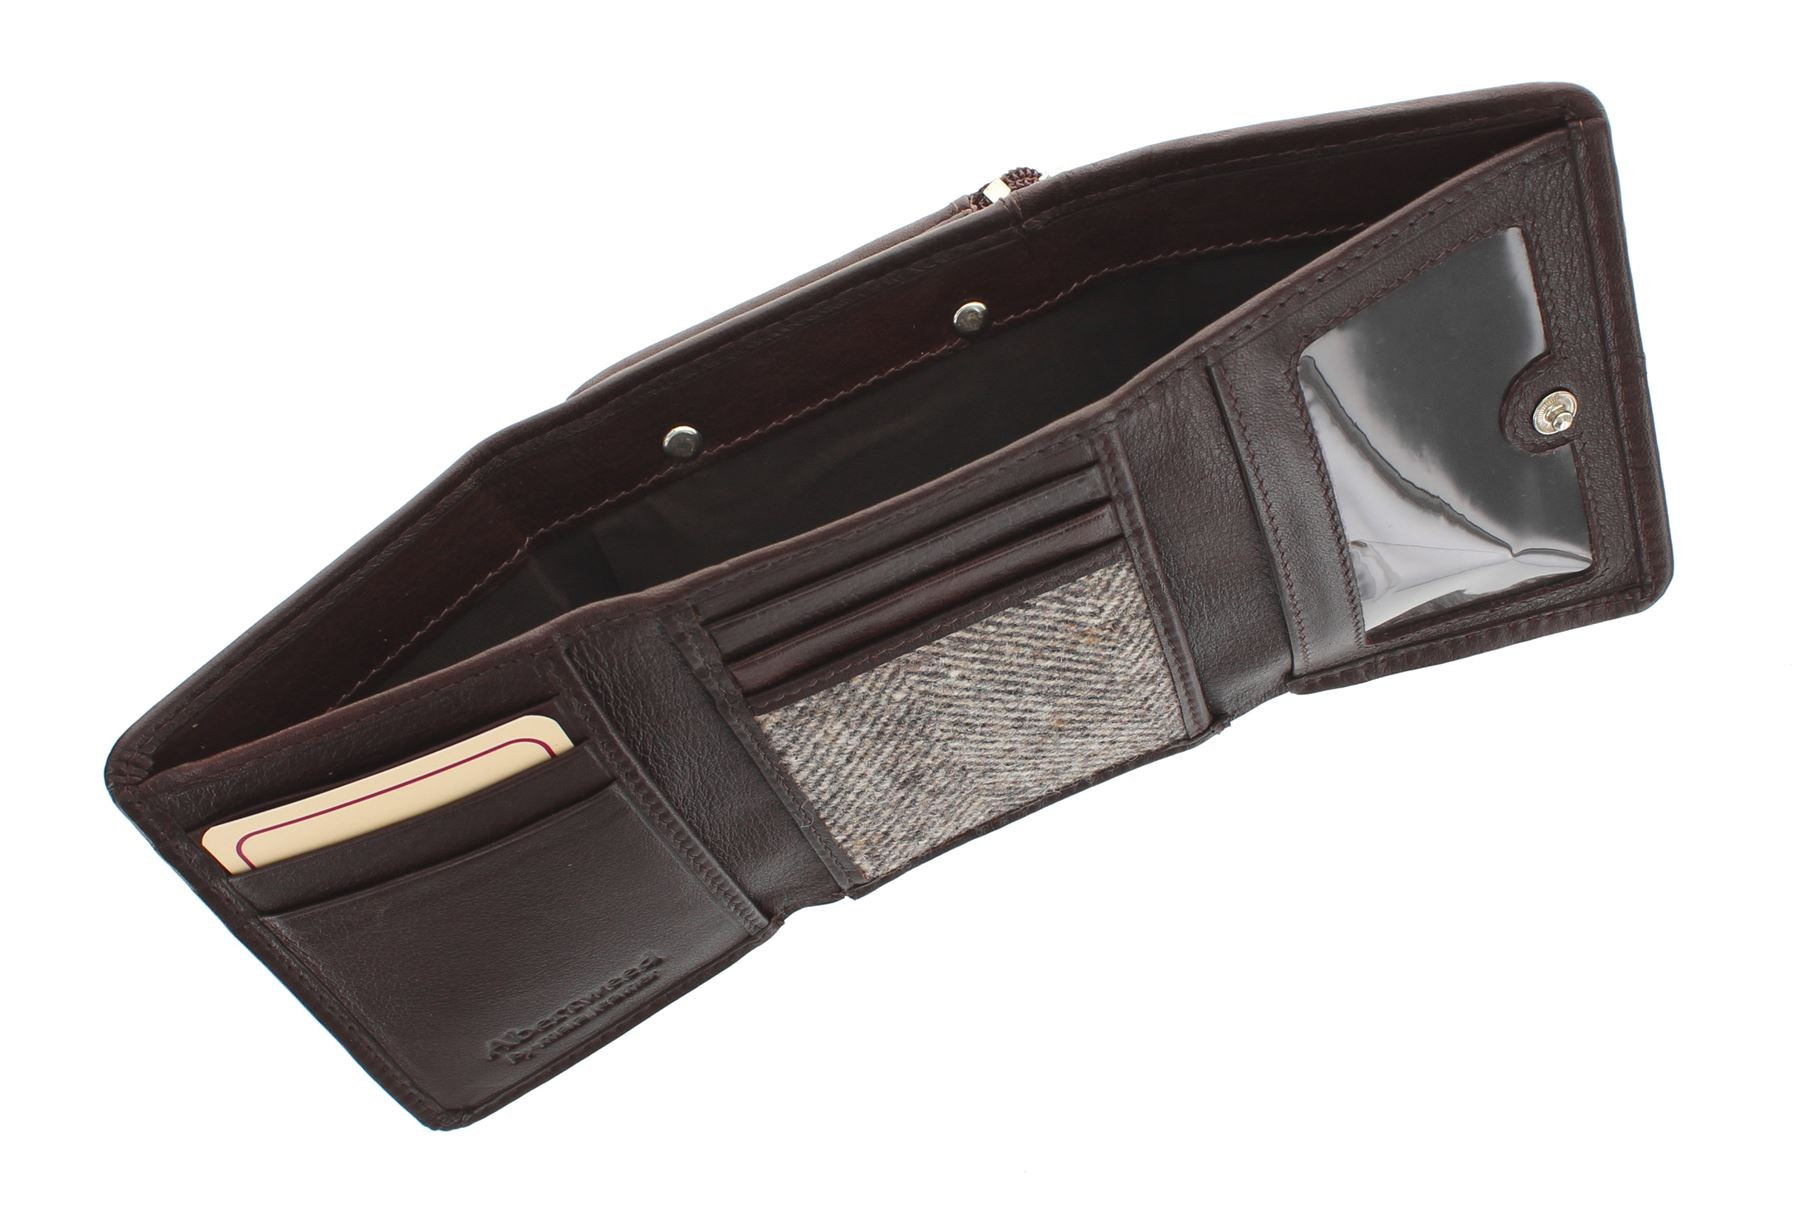 Mala Leather ABERTWEED Collection Compact Leather /& Tweed Purse 3123/_40